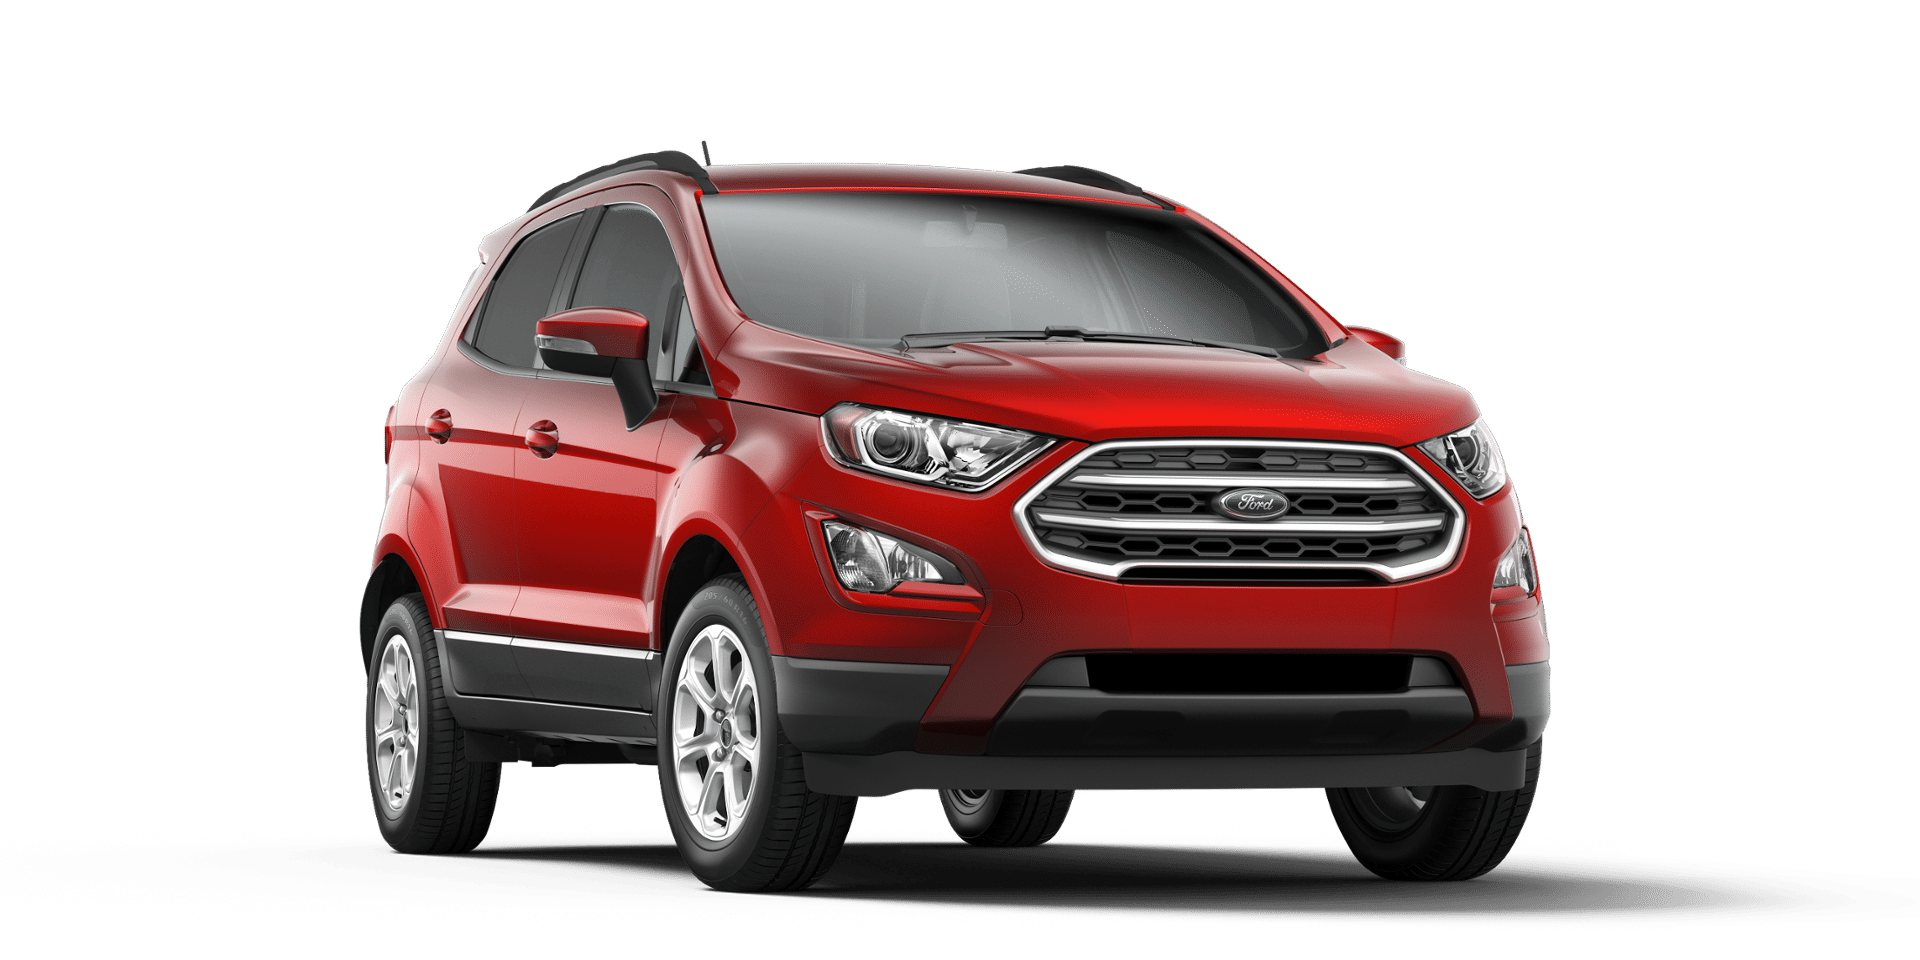 Ford Ecosport Ruby Red Front View